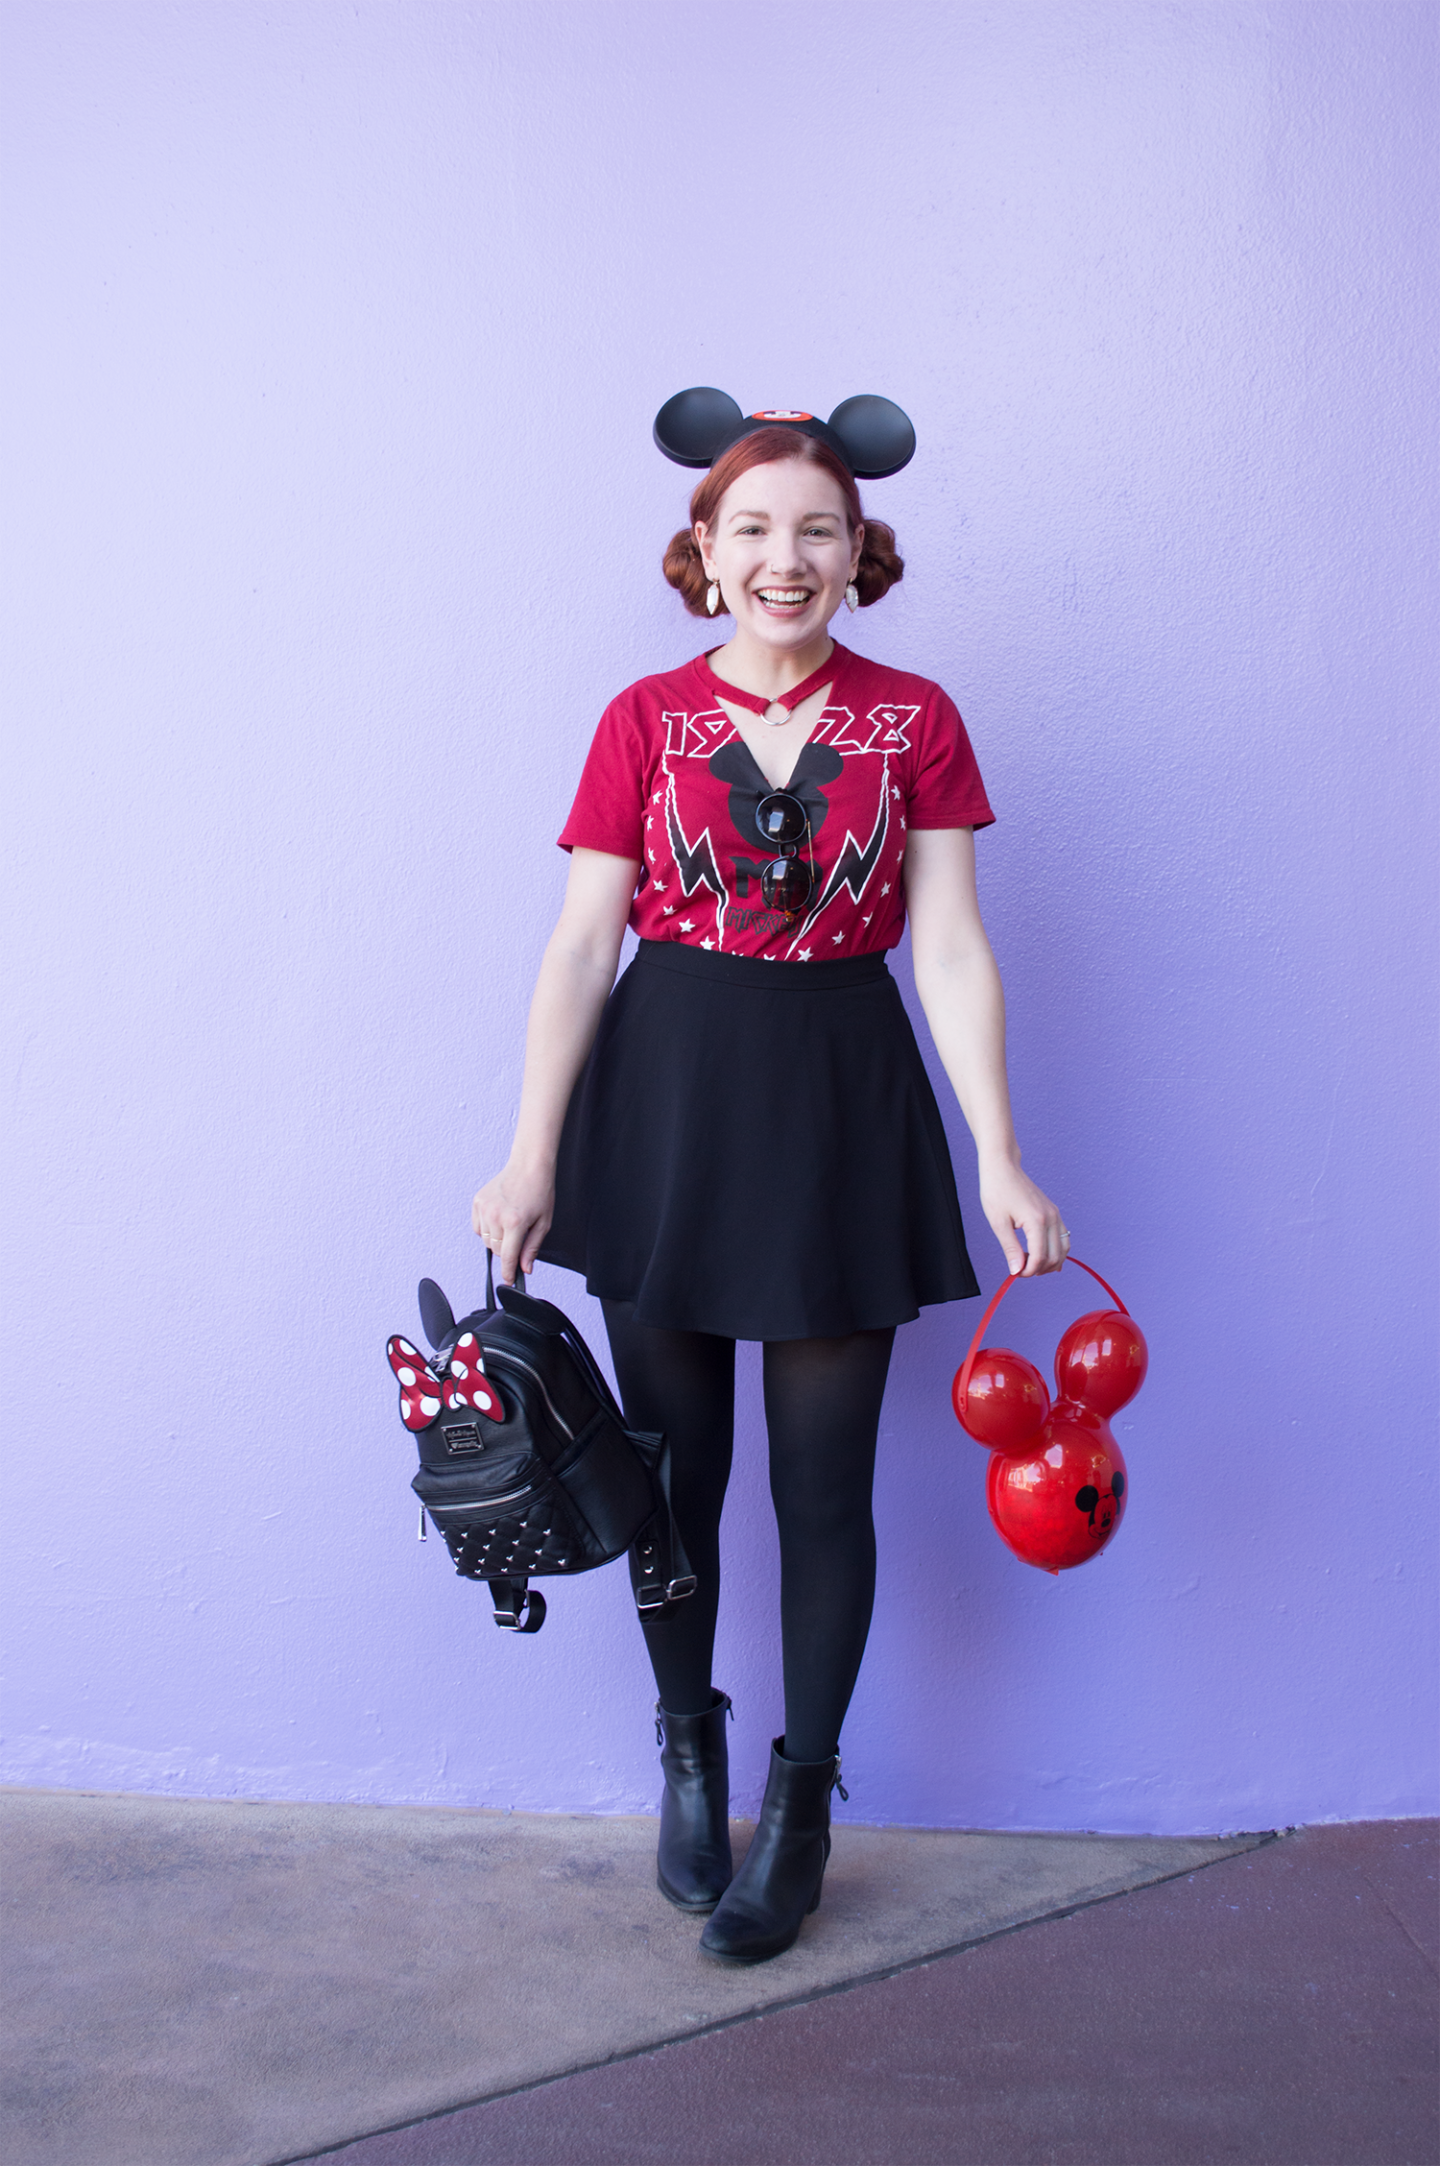 Walt Disney World Outfit: Posing at the Purple Wall